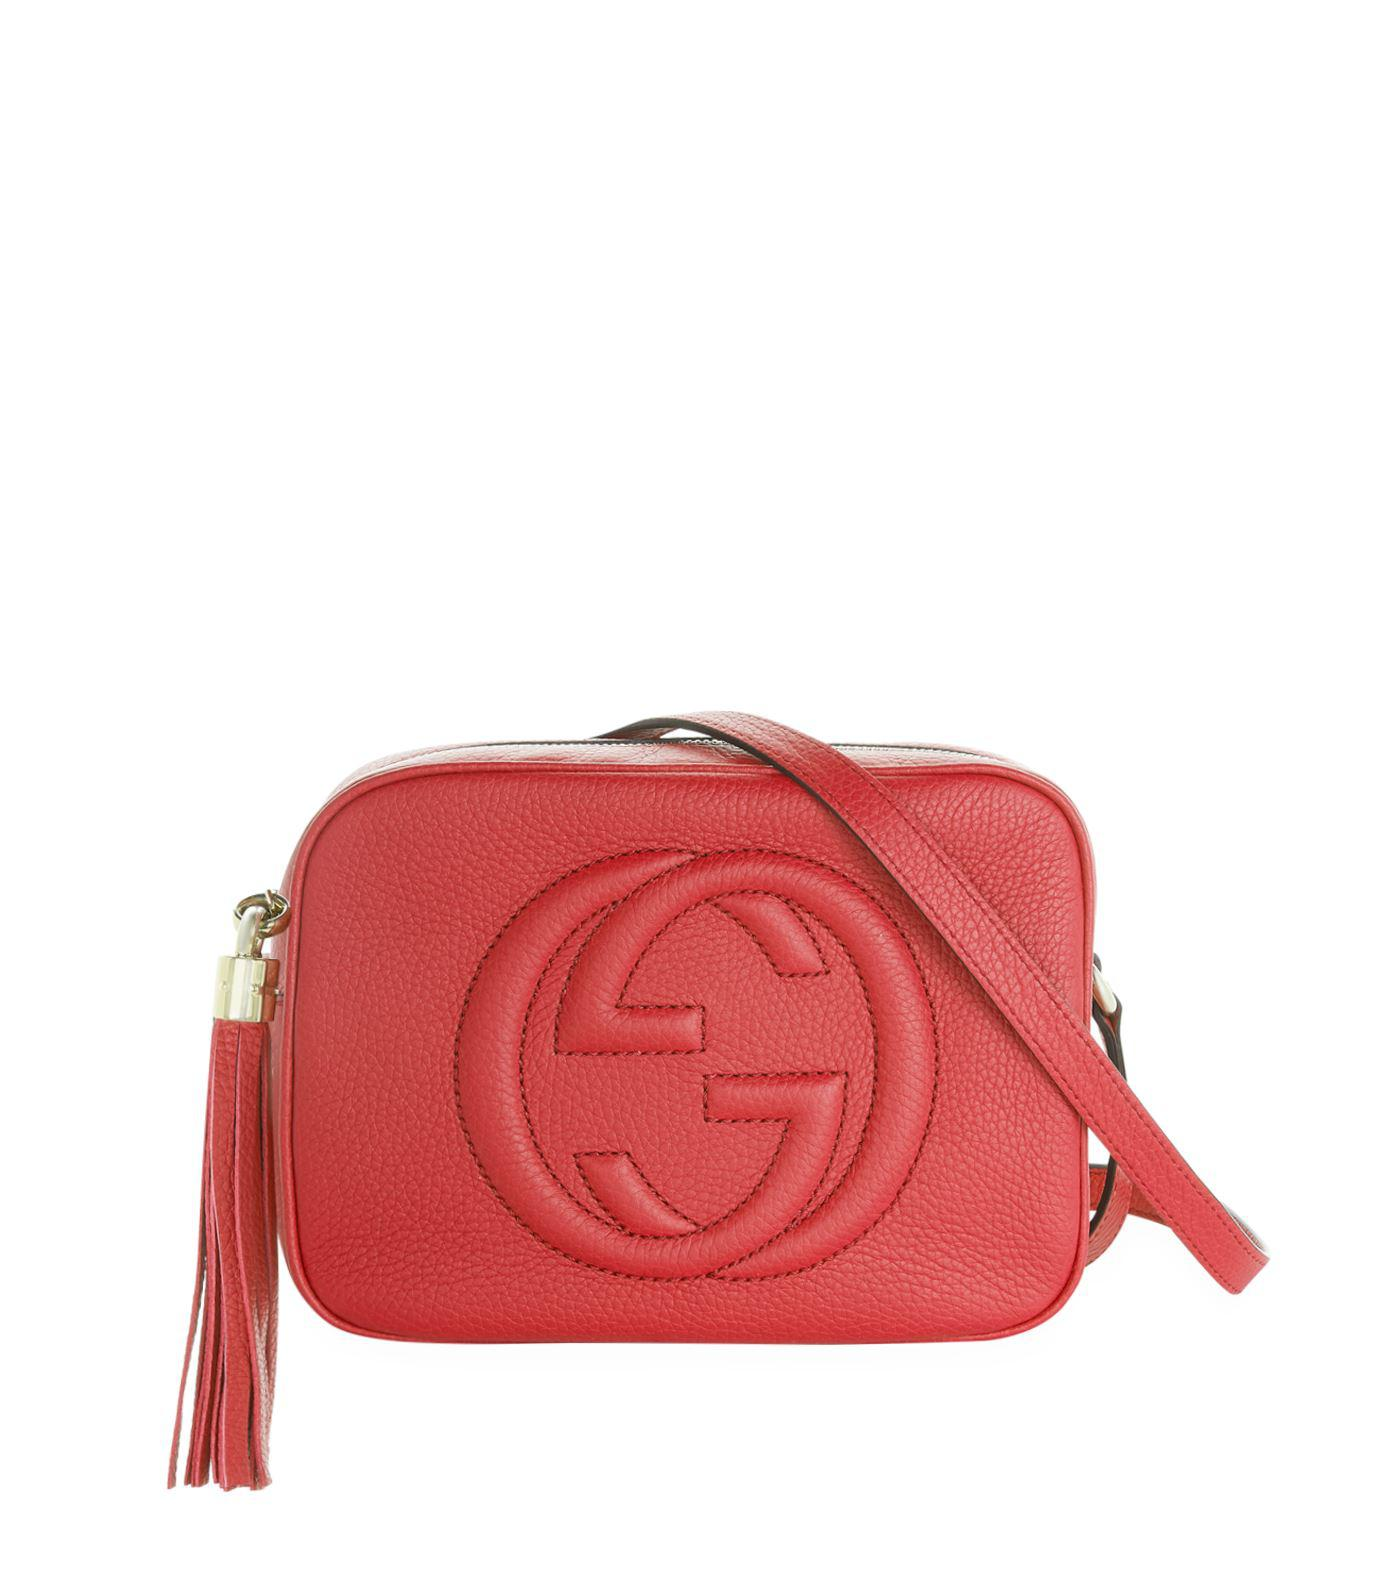 d8a14868130c Lyst - Gucci Soho Small Leather Disco Bag in Metallic - Save 25%